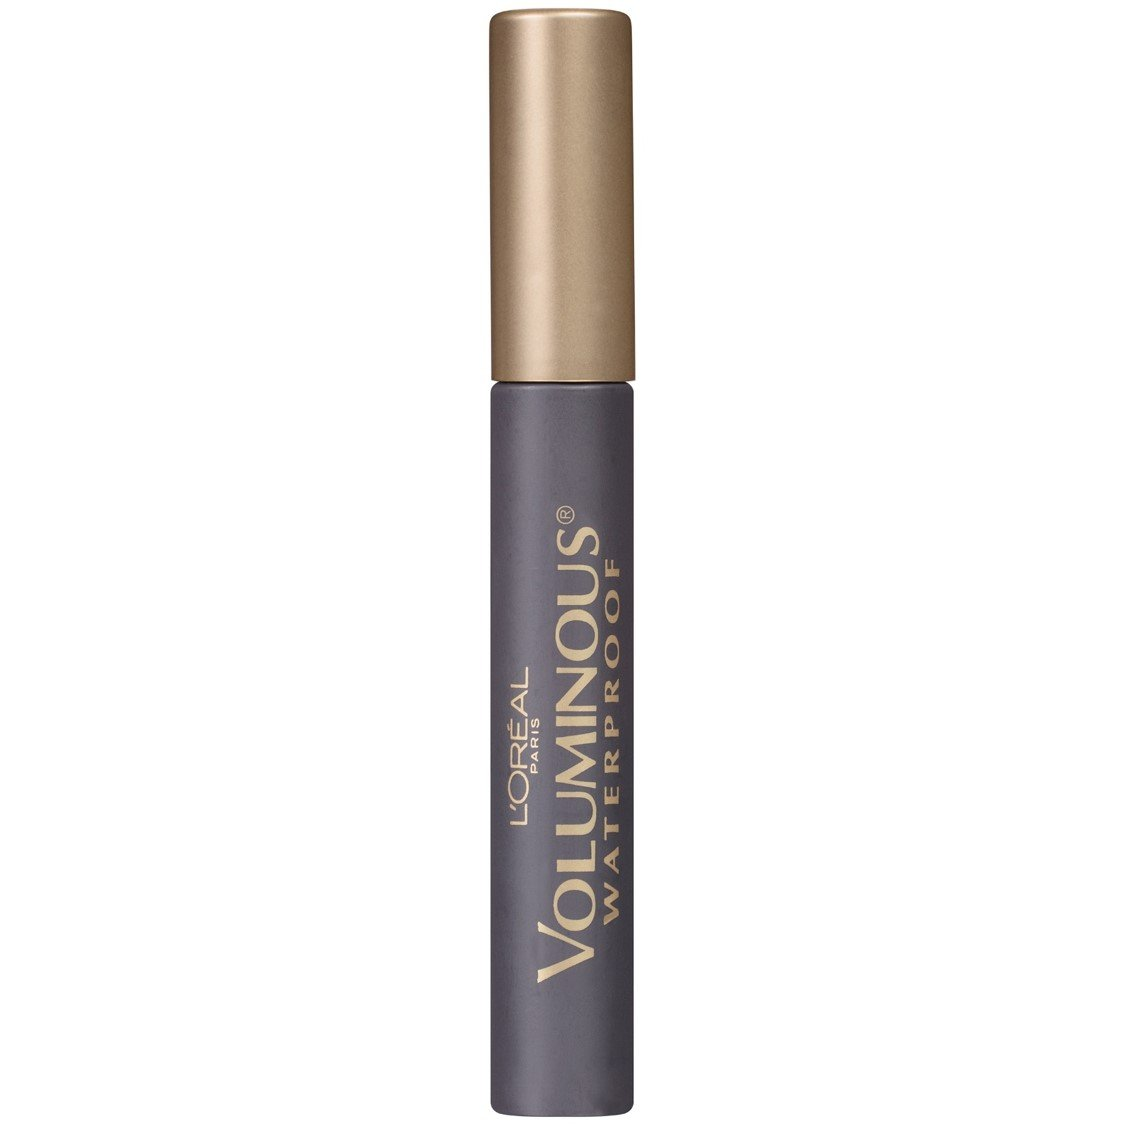 935a0fd6252 L'Oreal Paris Voluminous Waterproof Mascara, Black Brown, 0.28-Fluid Ounce:  Amazon.co.uk: Beauty